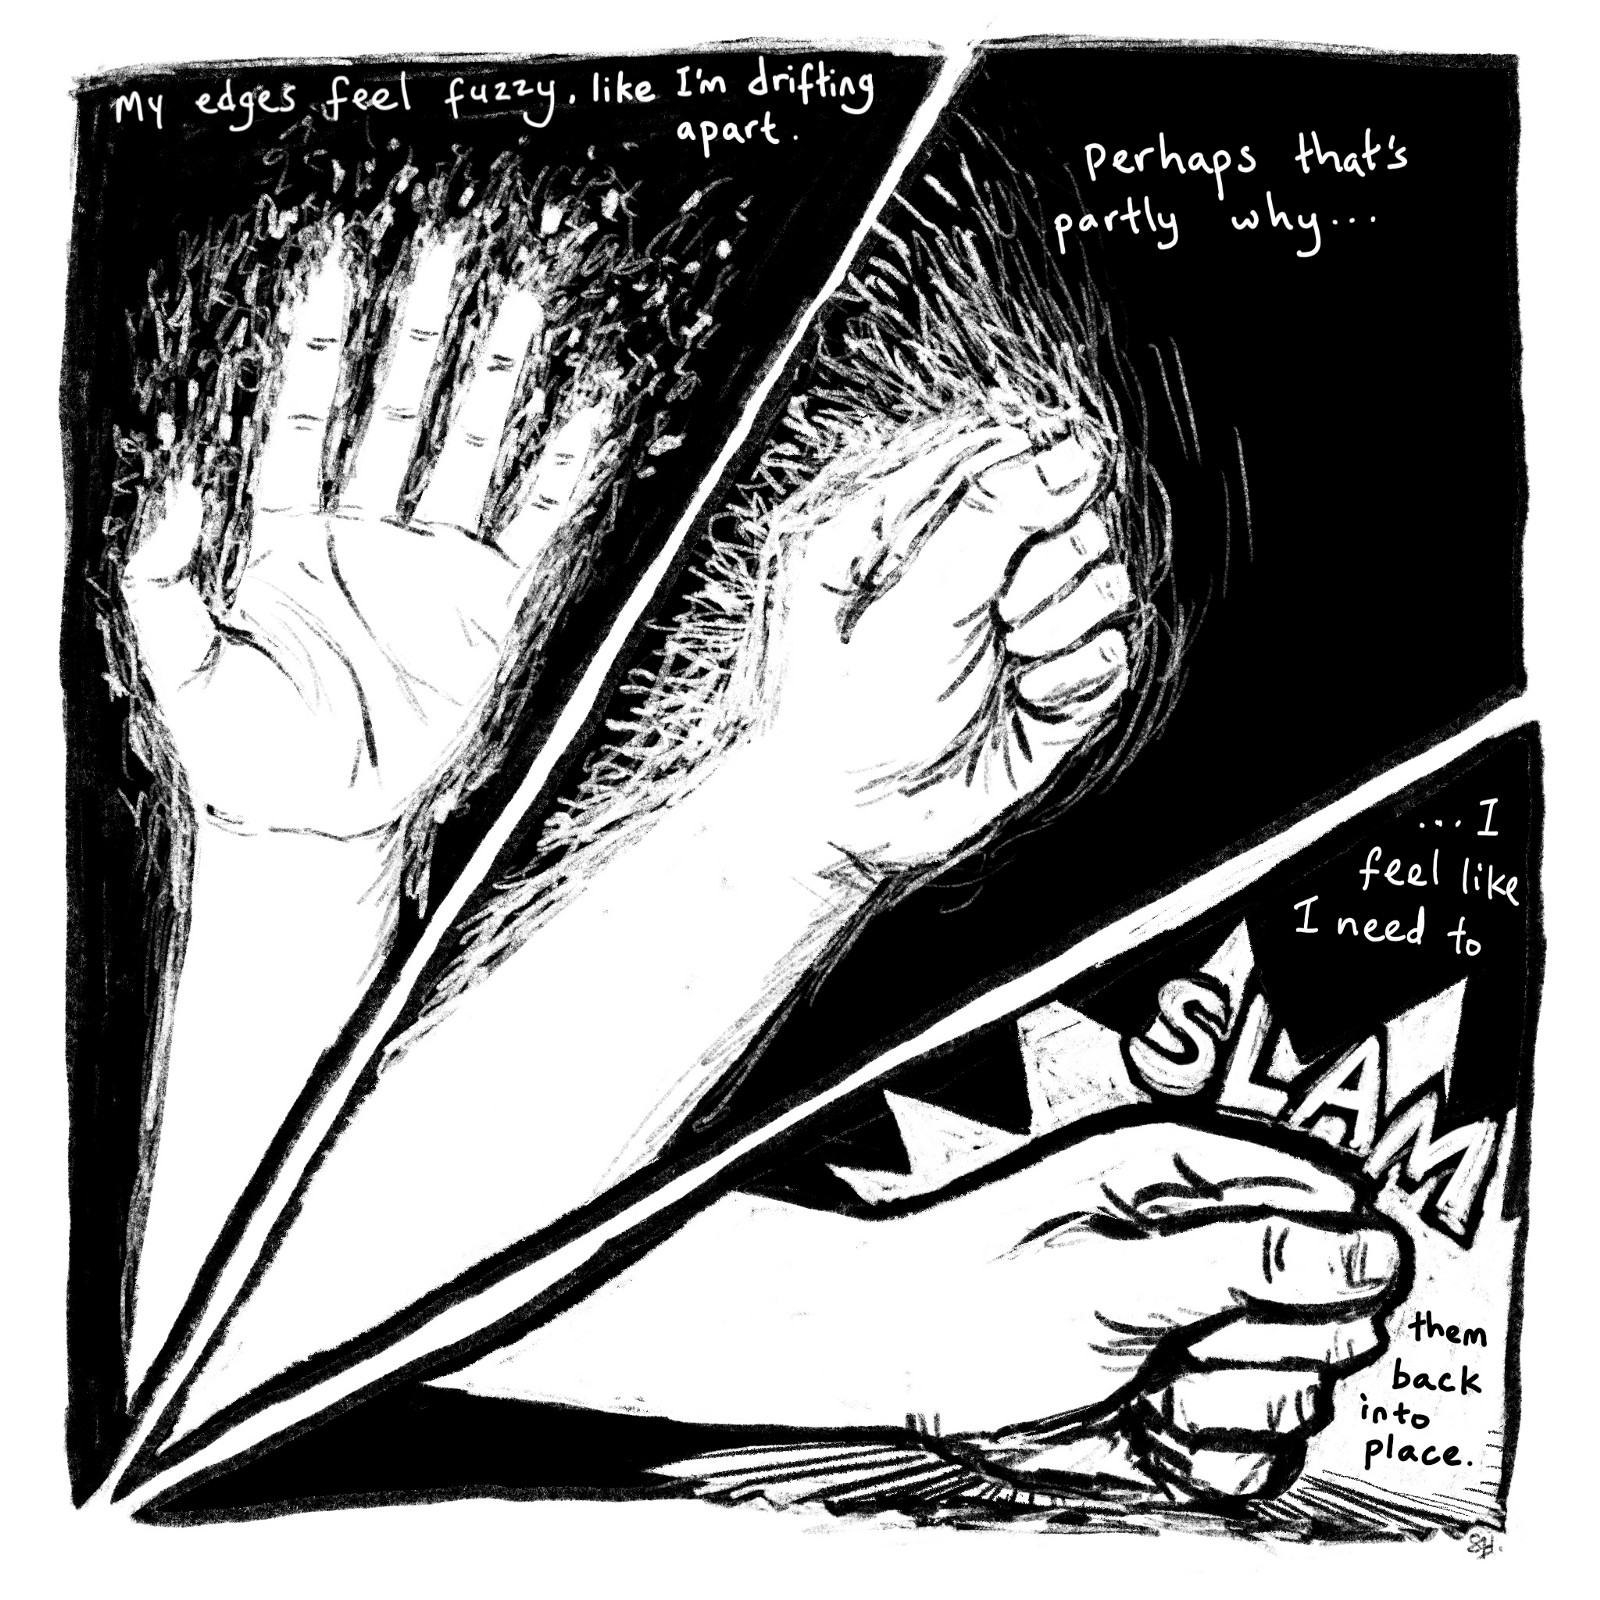 "separated by a long diamond.  In the first section is a drawing of a white palm. The section is captioned ""My edges feel fuzzy, like I'm drifting apart.""  The second panel has a drawing of the same hand in a first. It is captioned, ""Perhaps that's partly why…"" The third panel contains a drawing of a fist slamming into the bottom of the square, cracking the surface below it. Above the first is  a large, a jagged semi-circle, showing that the fist was slammed down with great force.  The caption finishes, ""…I feel like I need to SLAM them back into place.  In full, the caption reads, ""My edges feel fuzzy, like I'm rifting apart. Perhaps that's partly why… …I feel like I need to SLAM them back into place.""]"